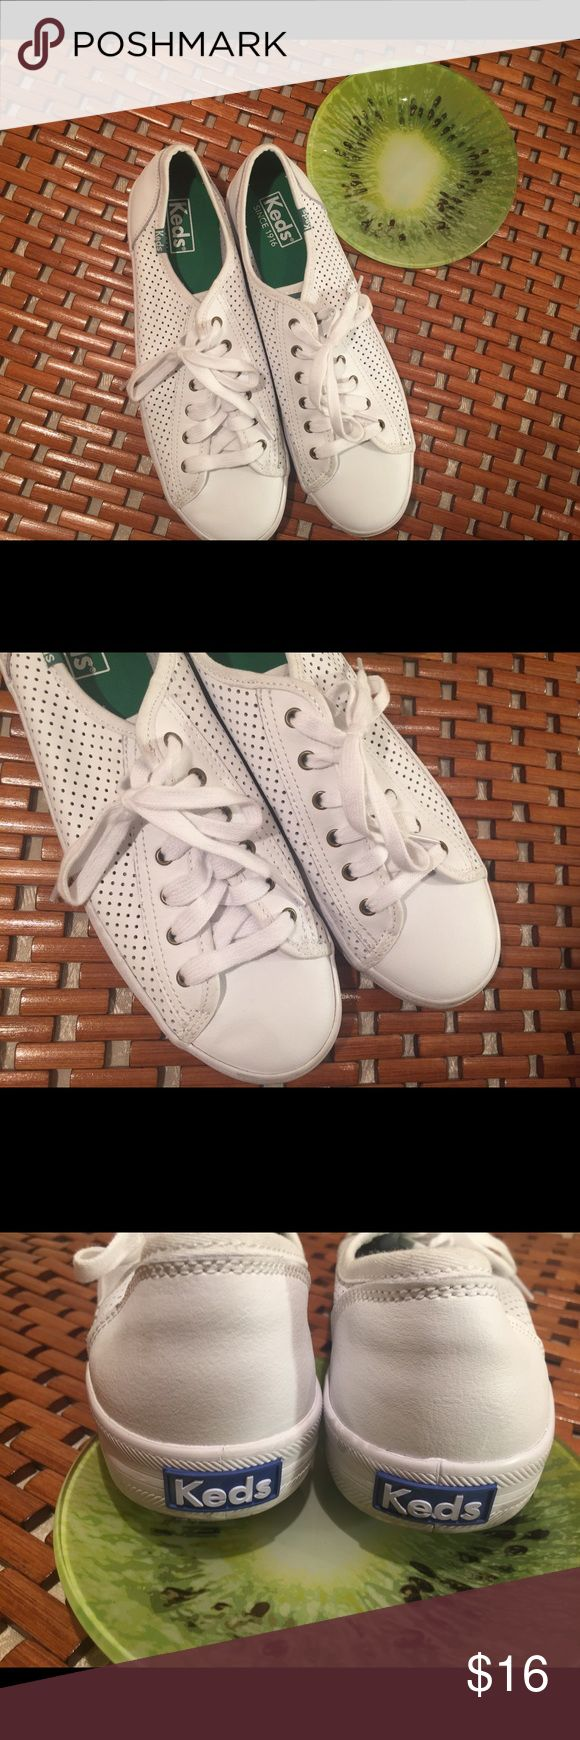 😎Cool😎 Women Leather Ked's Size 9 😎Cool😎 Women Leather Ked's Size 9 . Good condition.    No rips or holes. Smoke and odor free environment.  Please review photos carefully and email me with any questions. Keds Shoes Sneakers